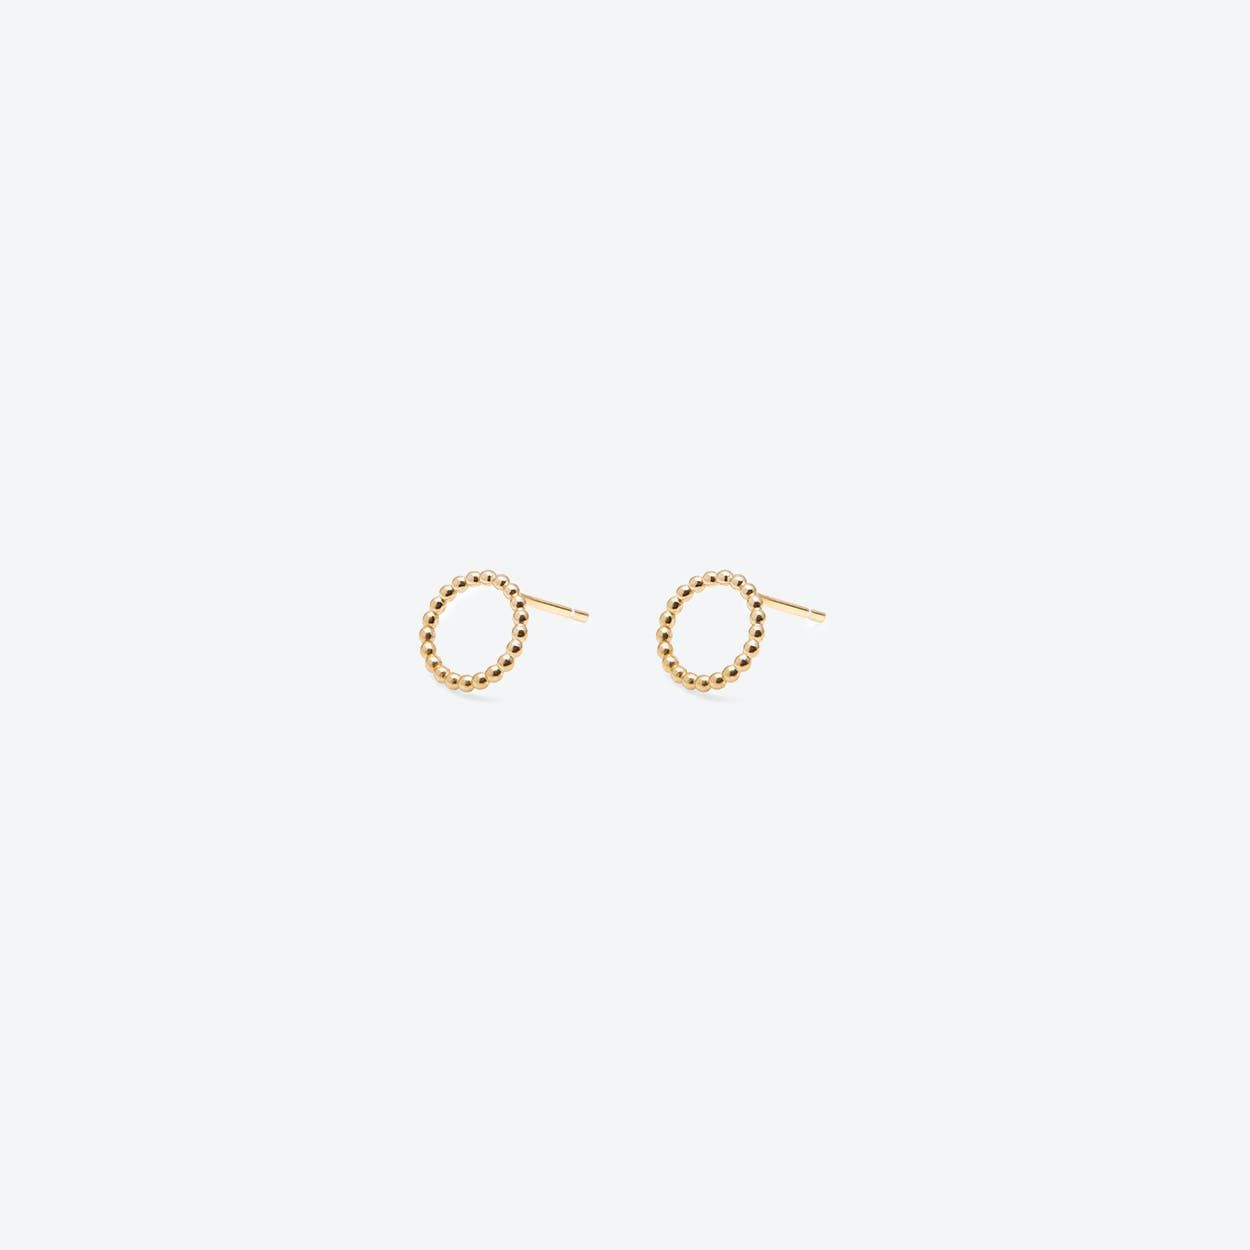 Mini Circle Ball Stud Earrings Gold Plated